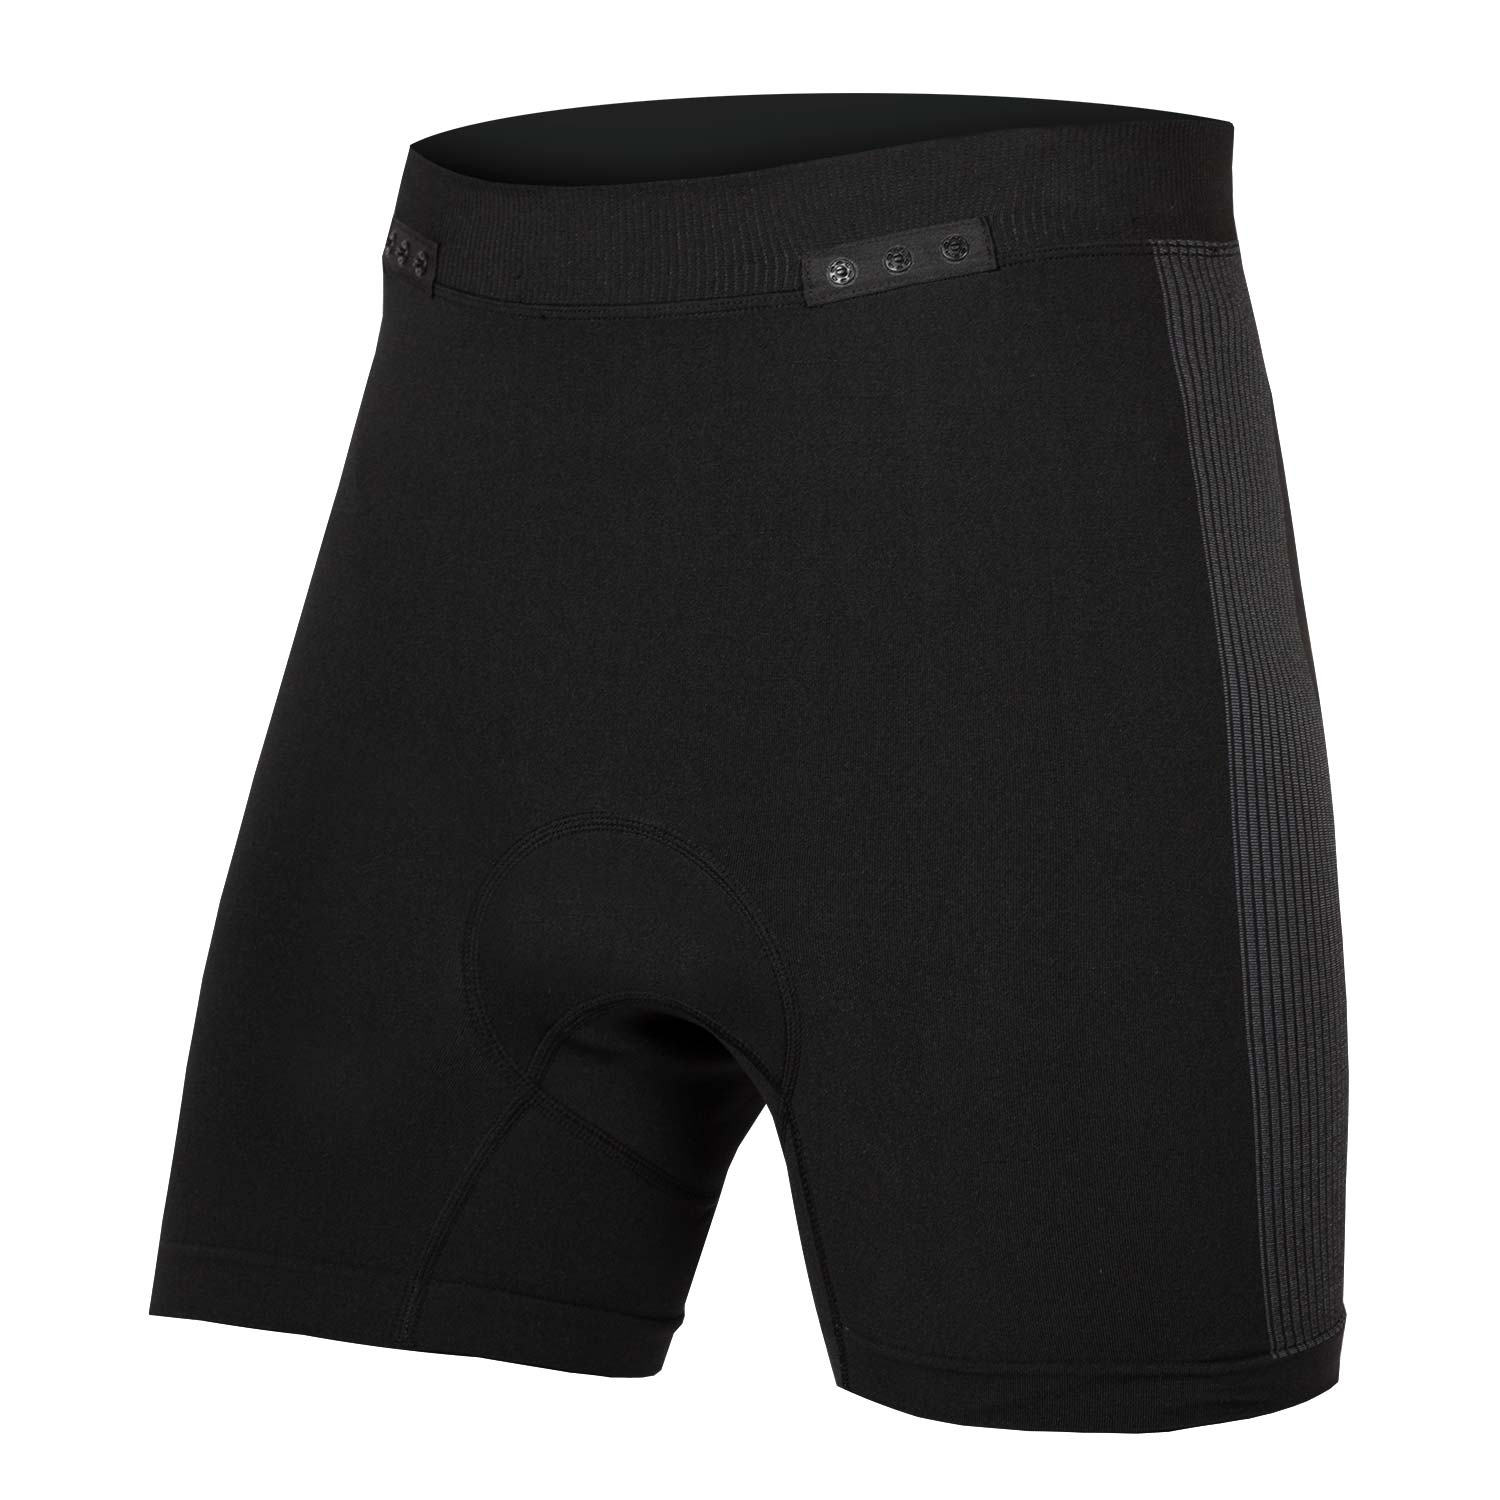 Engineered Padded Boxer with Clickfast Black